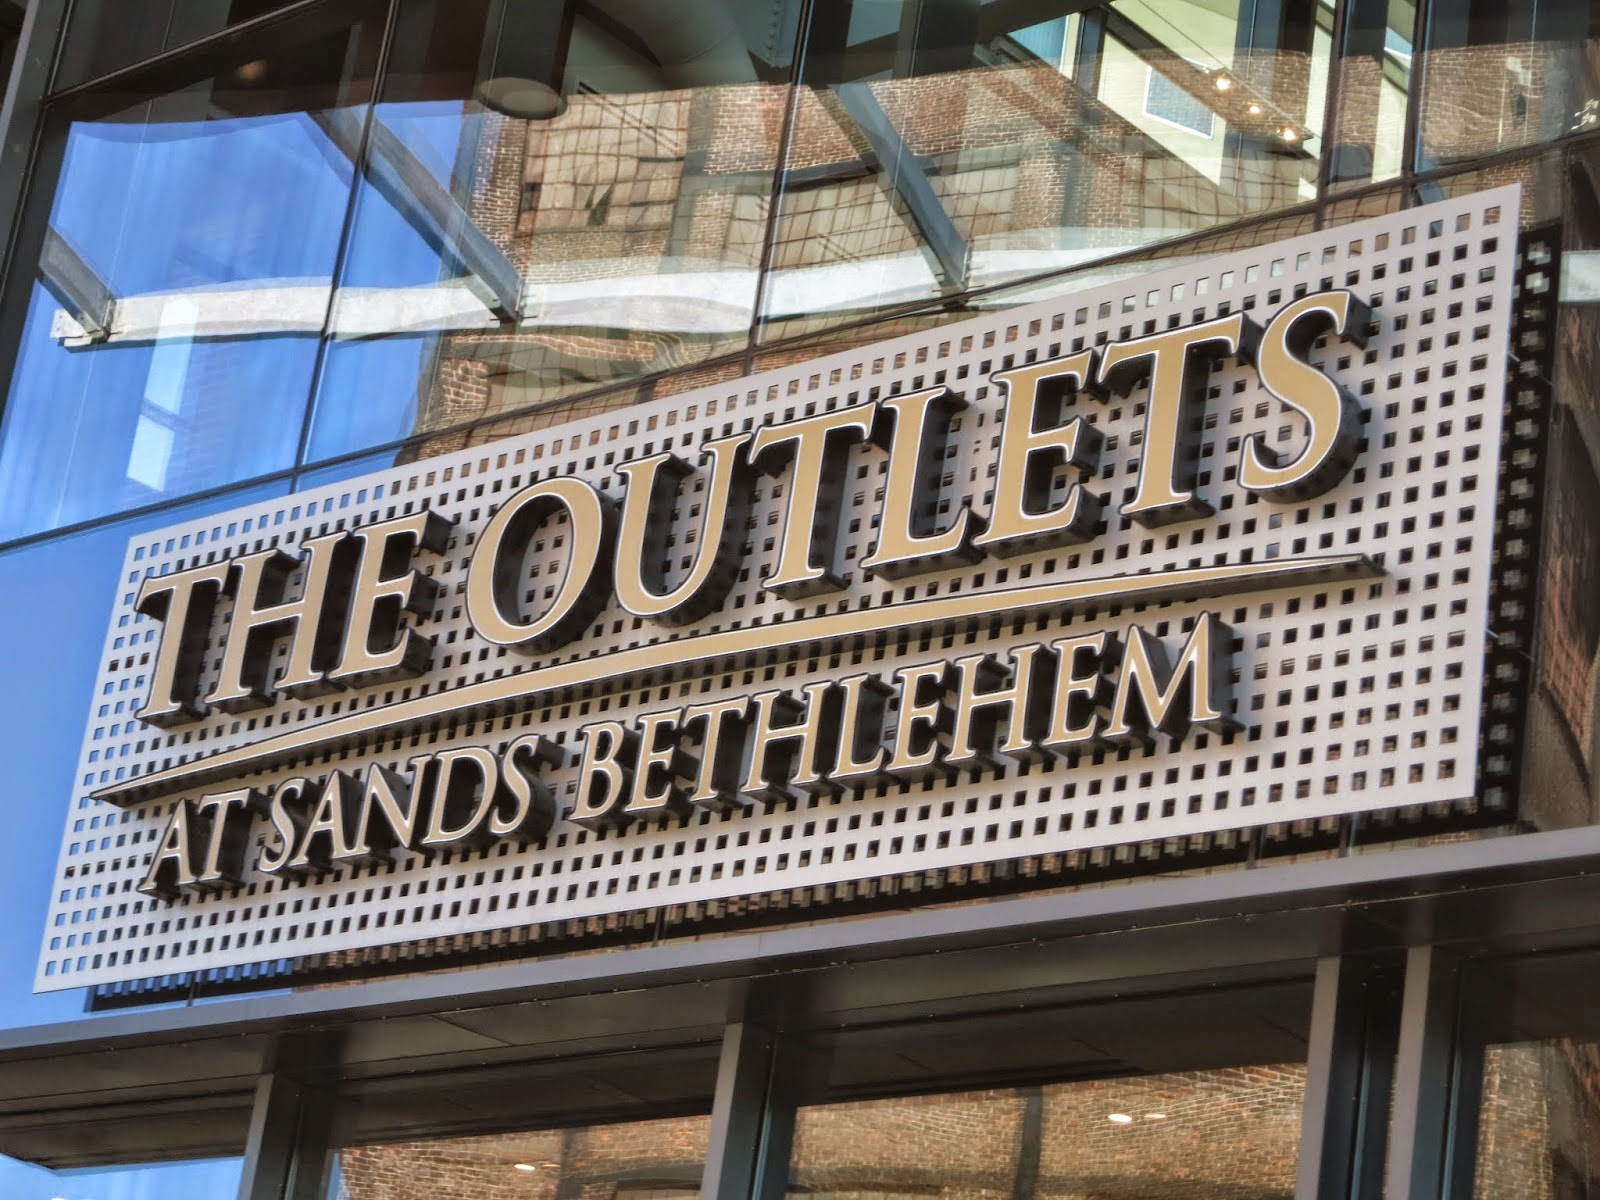 c23237aa15 Lenox is placed at The Outlets at Sands Bethlehem on address 77 Sands  Boulevard